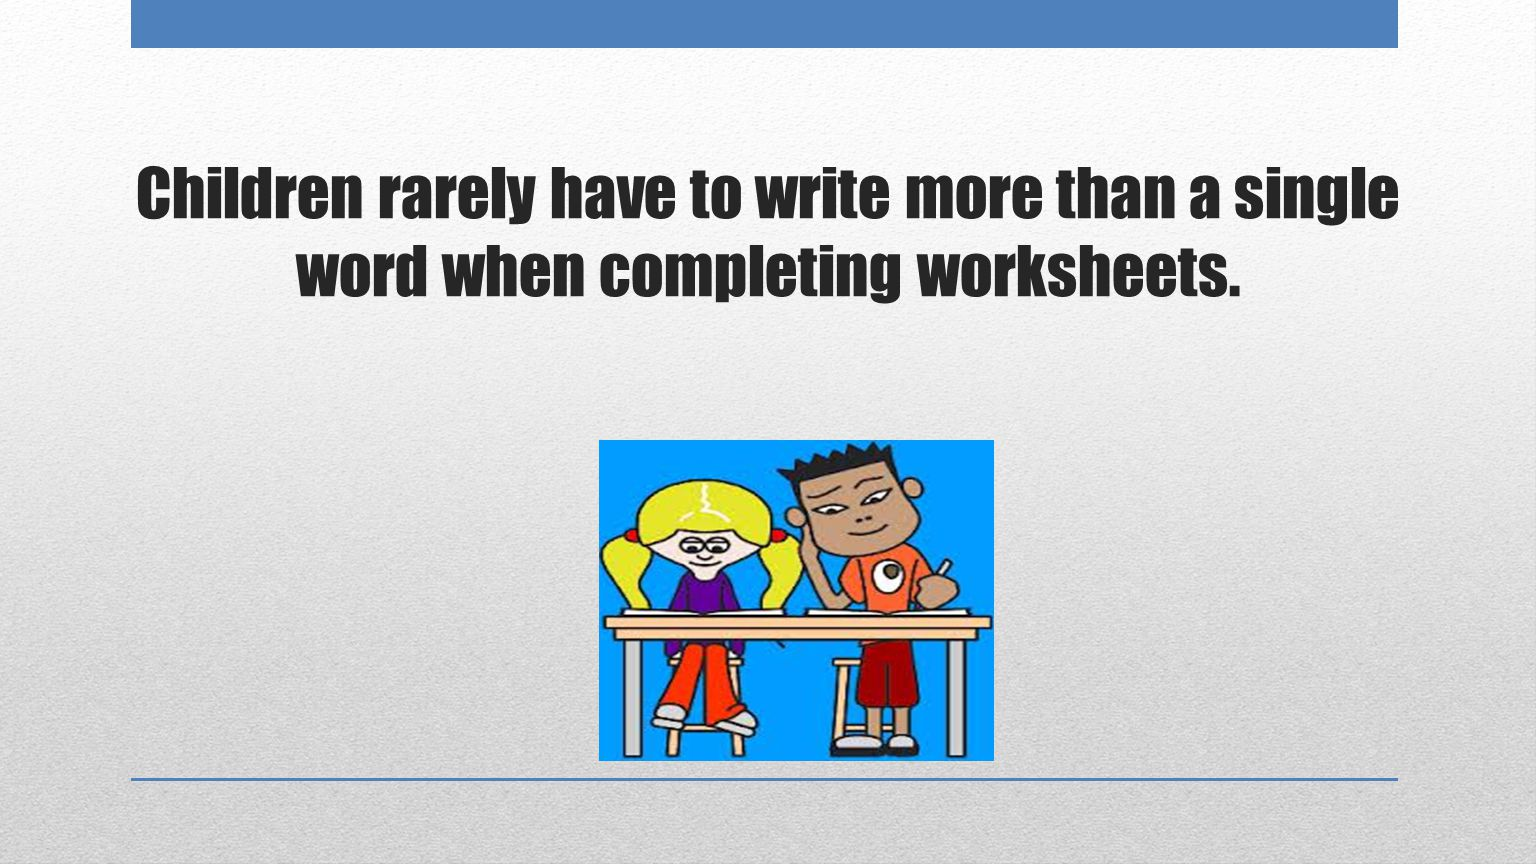 Children rarely have to write more than a single word when completing worksheets.